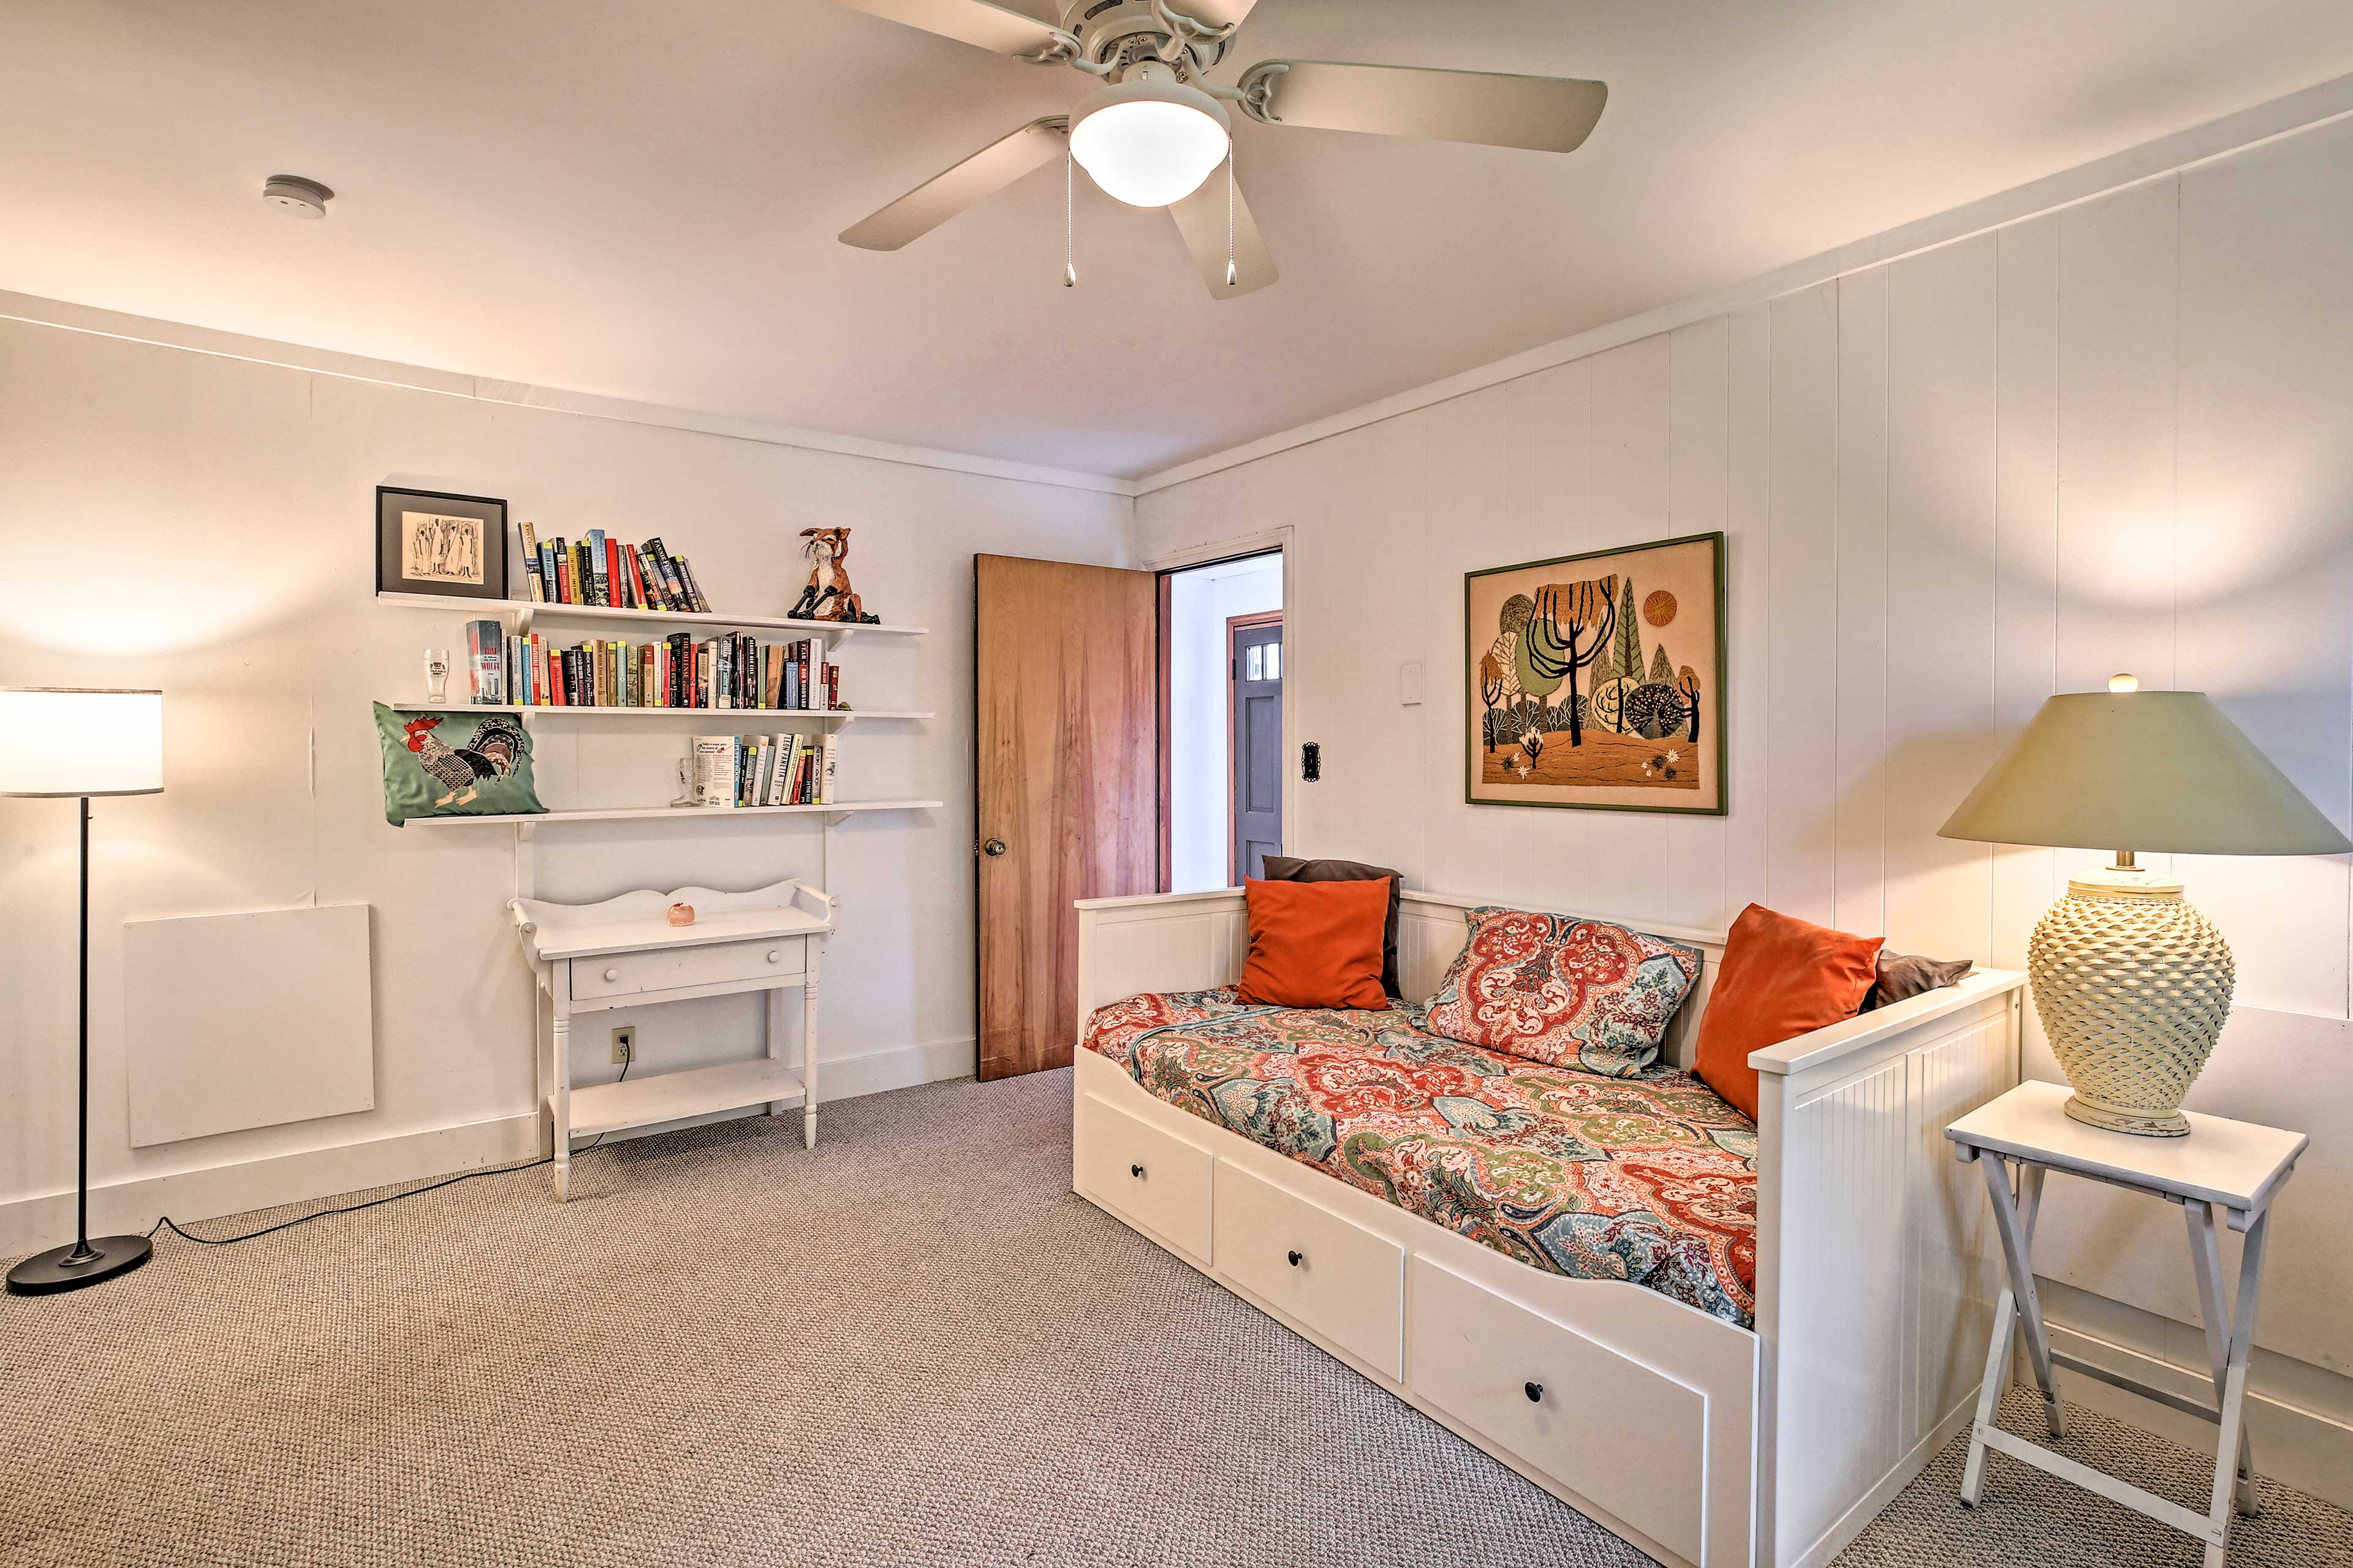 The room is home to 2 twin daybeds and a flat-screen TV.